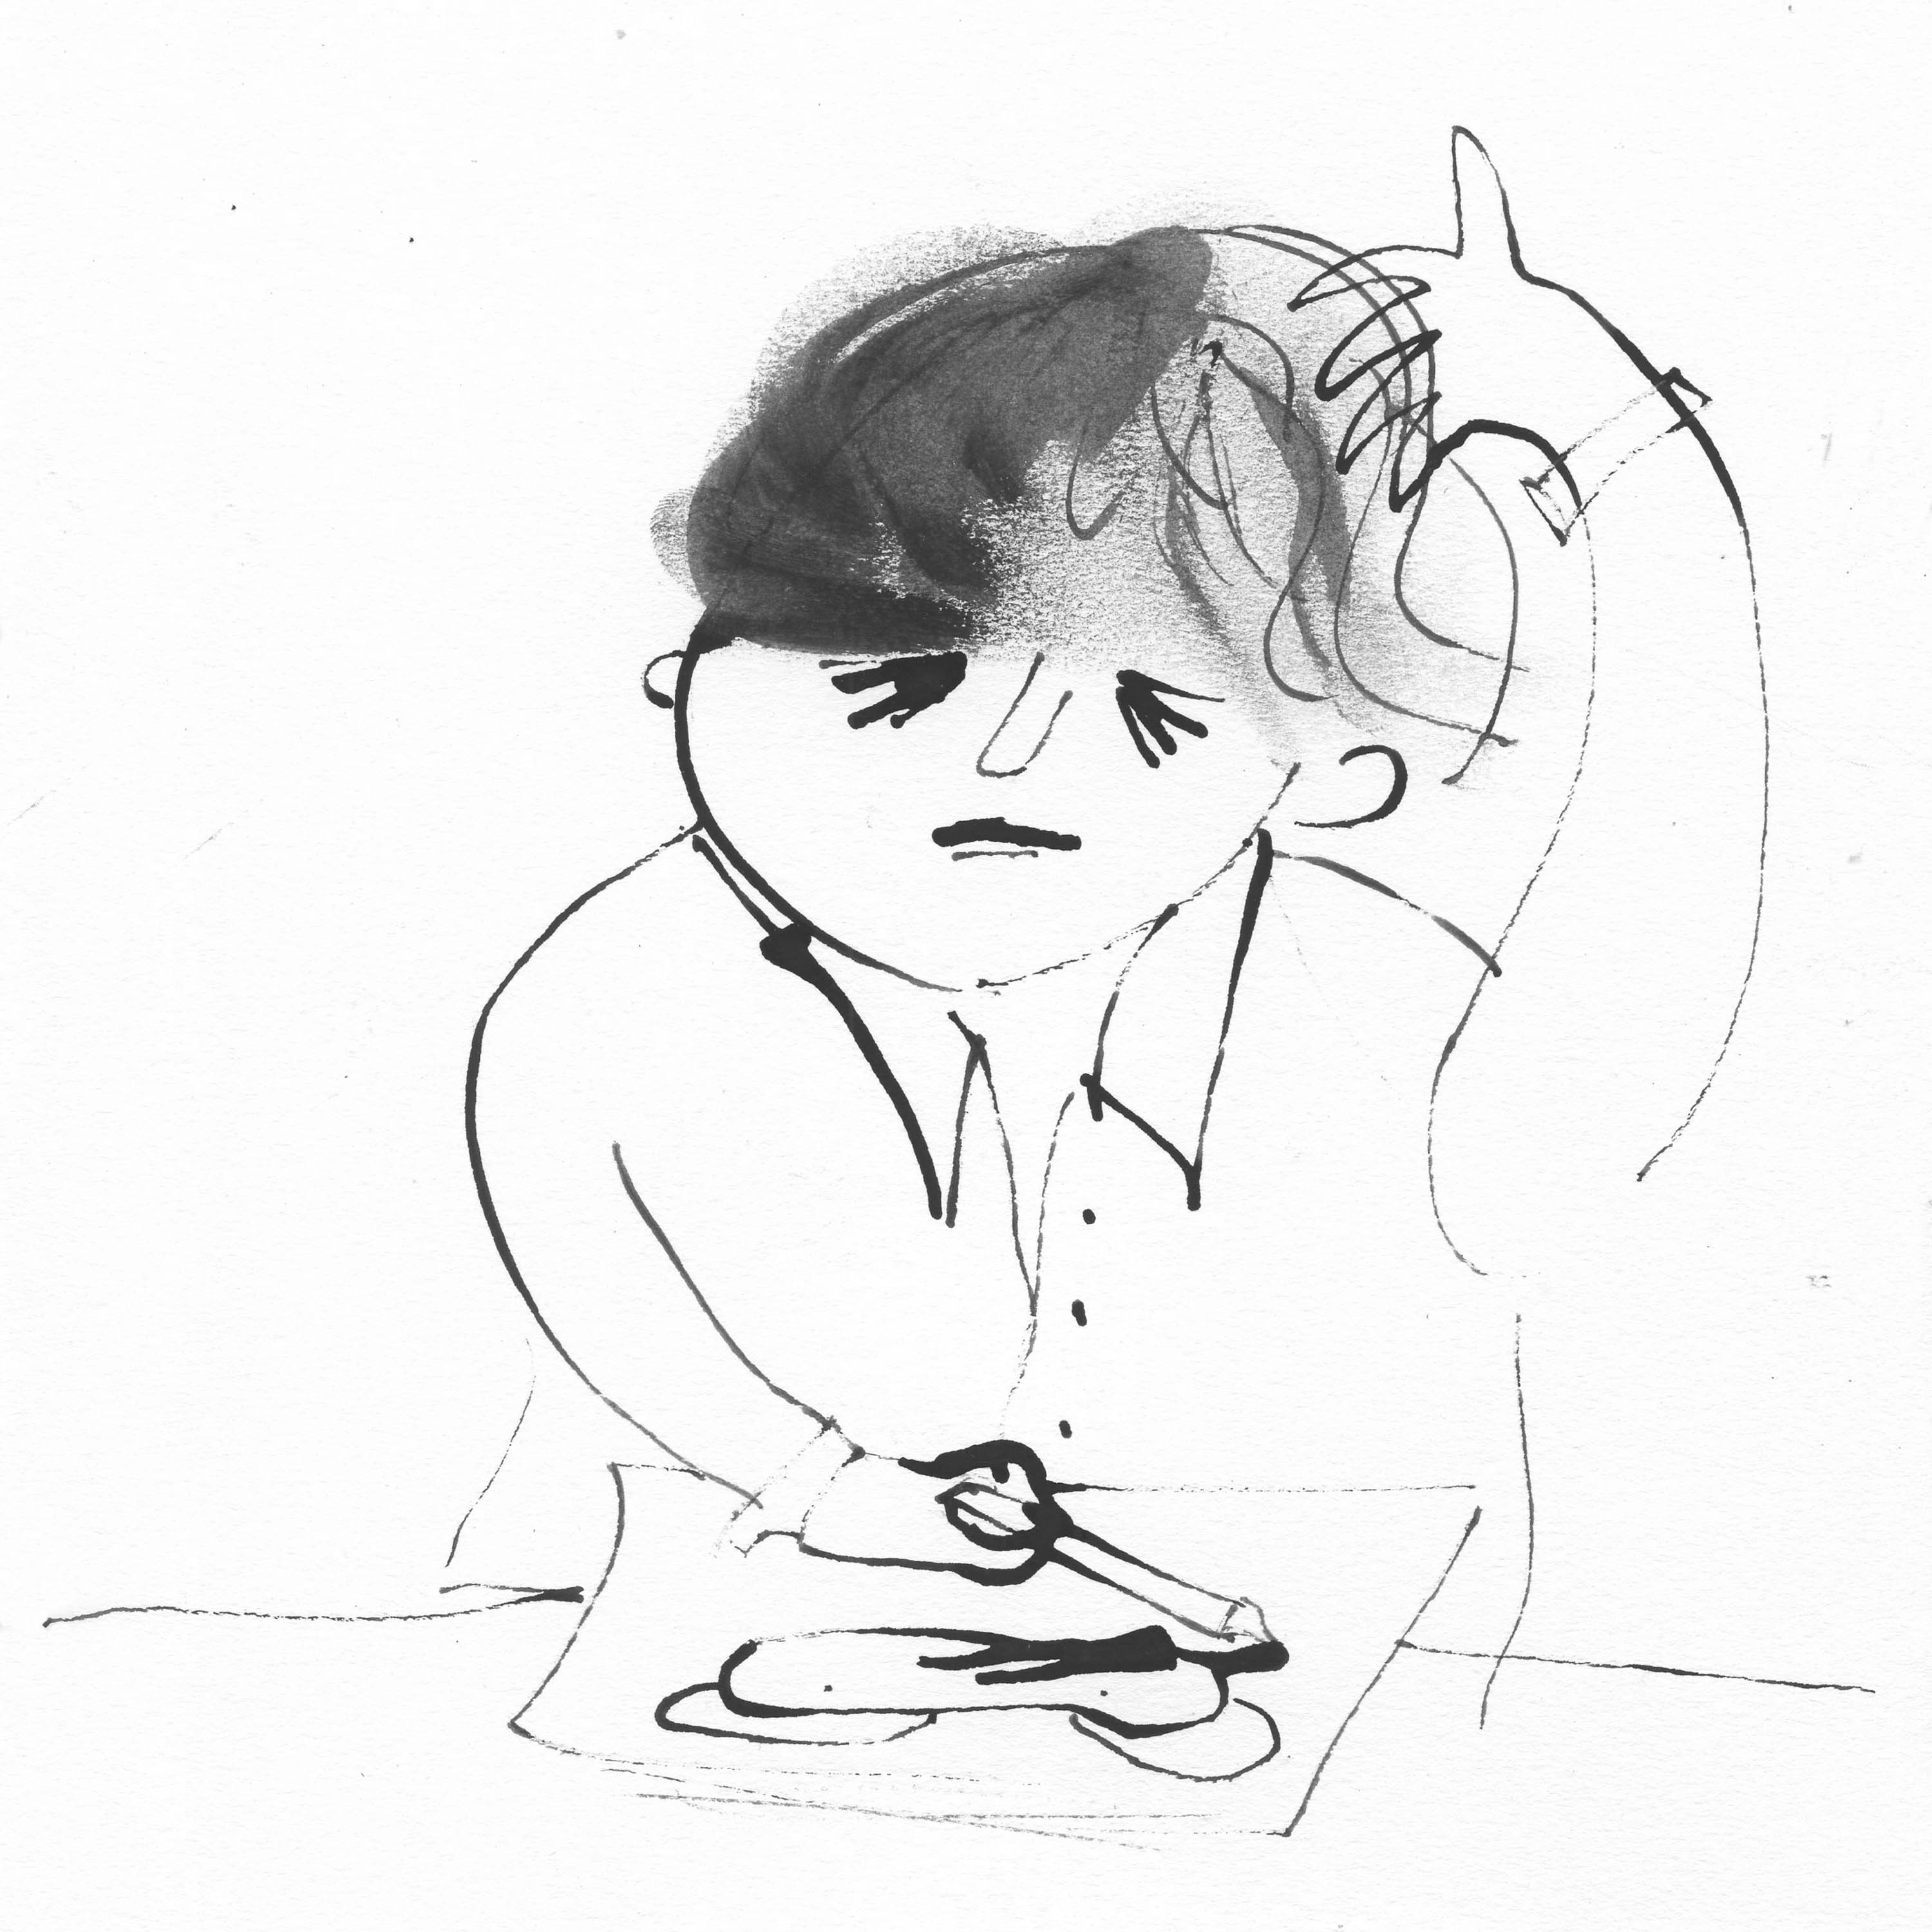 Illustration of the frustrated artist by Ellen Vesters picture book illustrator